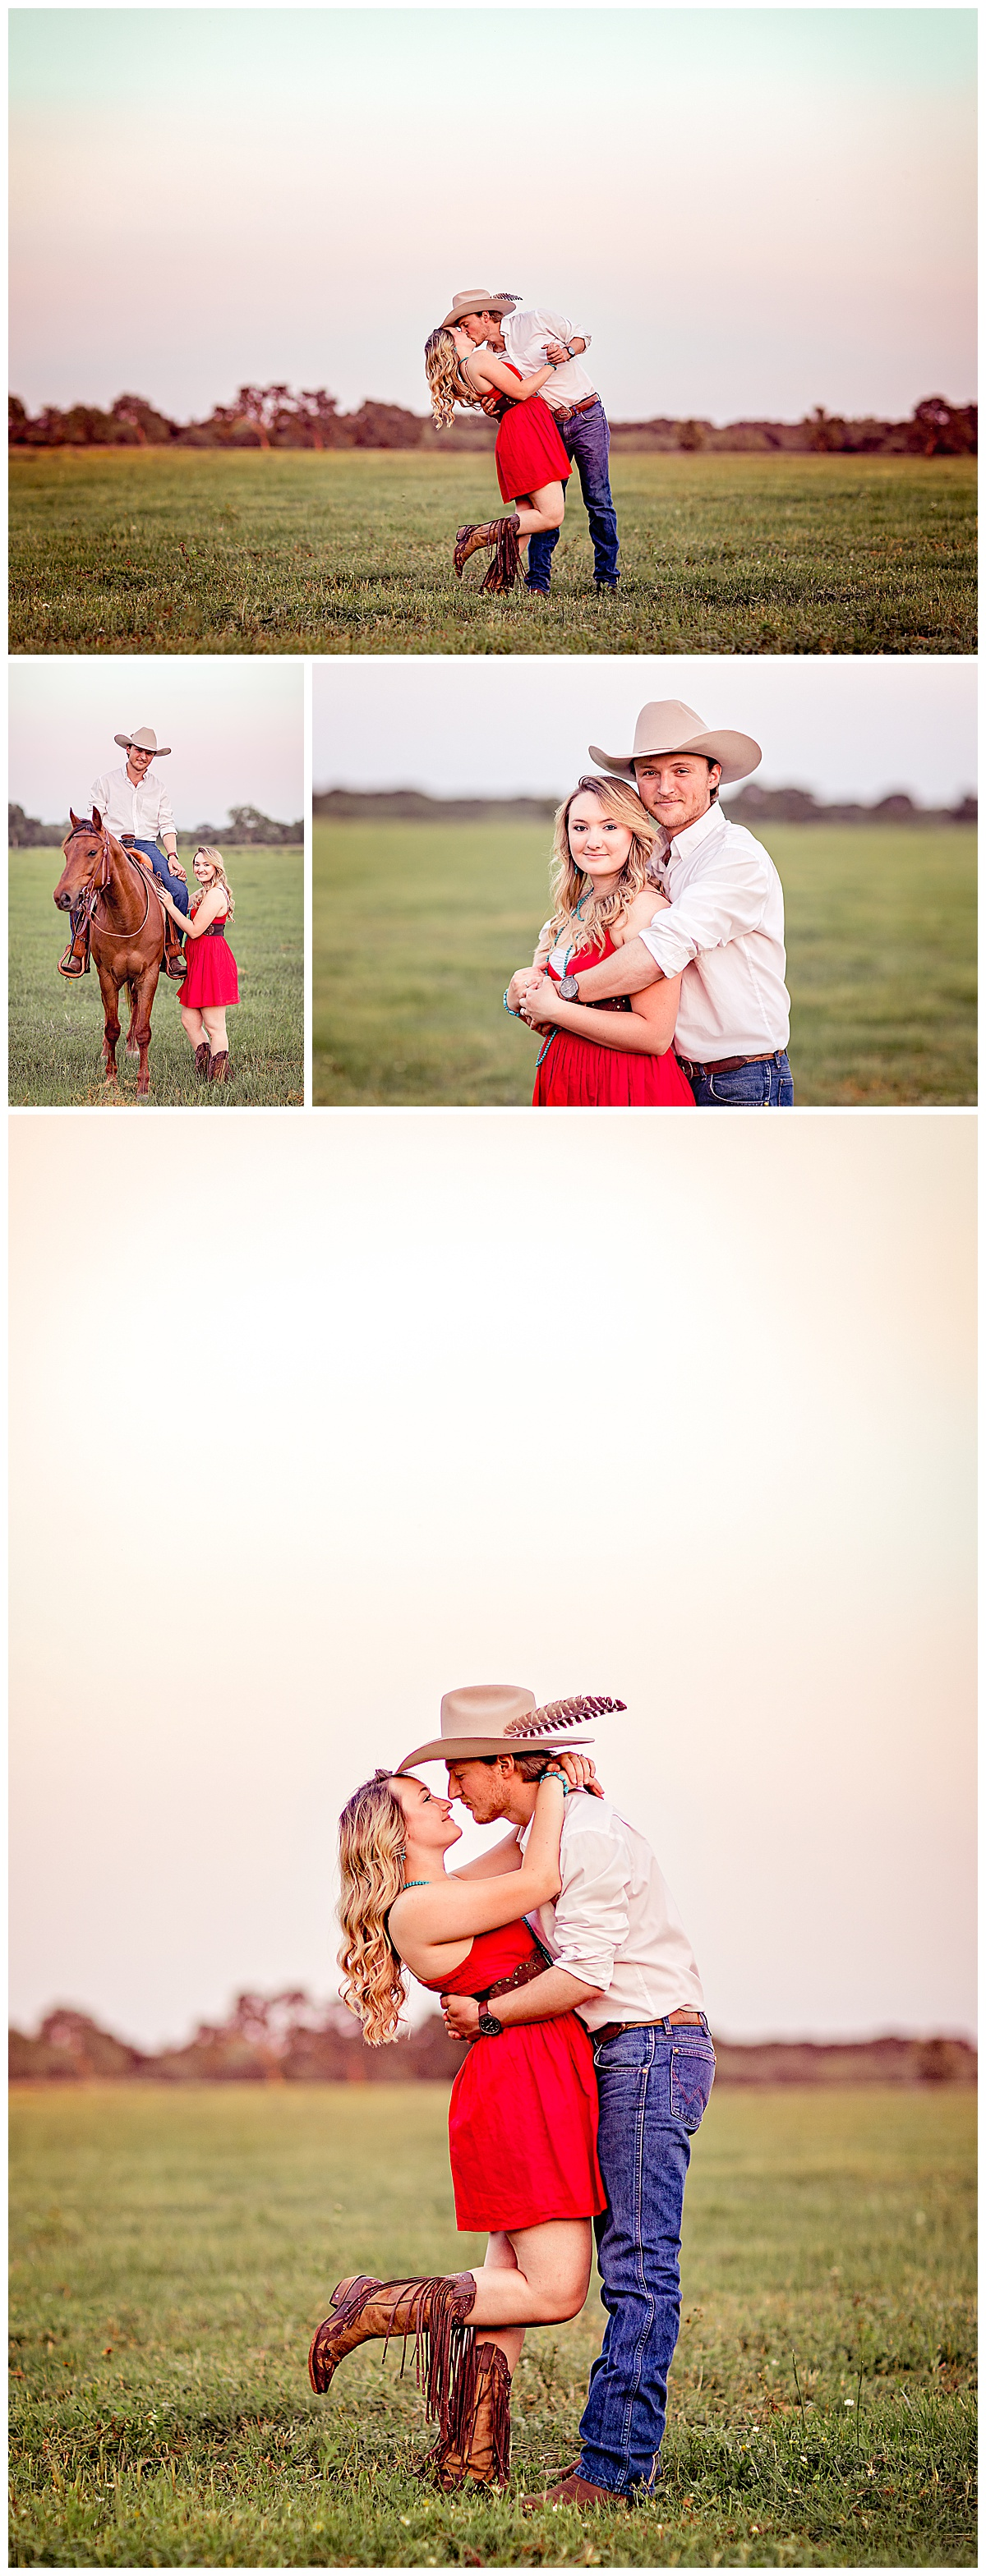 Rustic-Engagement-Session-Horse-Texas-Sunset-Carly-Barton-Photography_0004.jpg